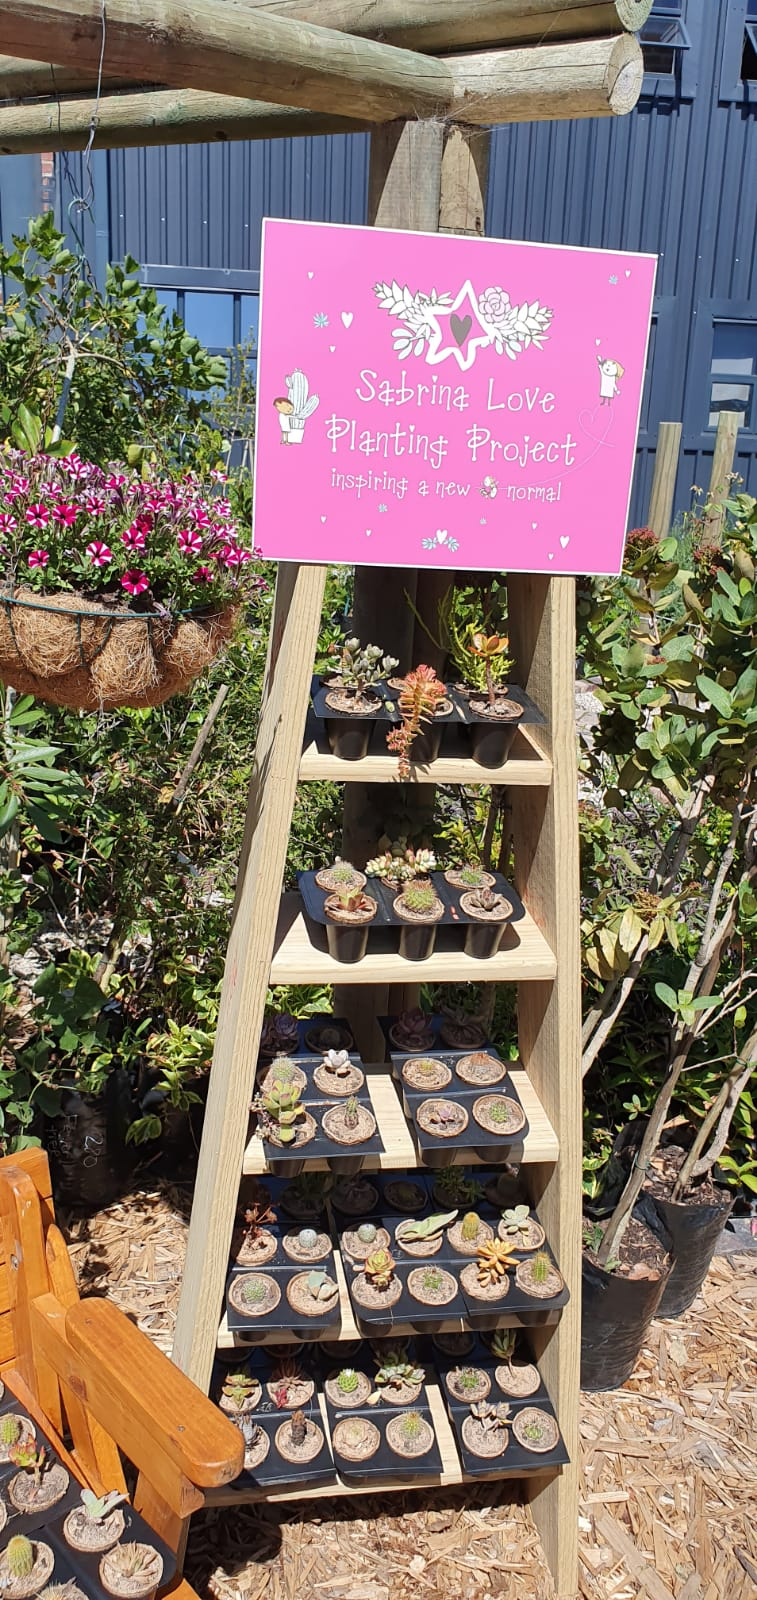 Sabrina Love youth cultivating succulents in biodegradable containers 8